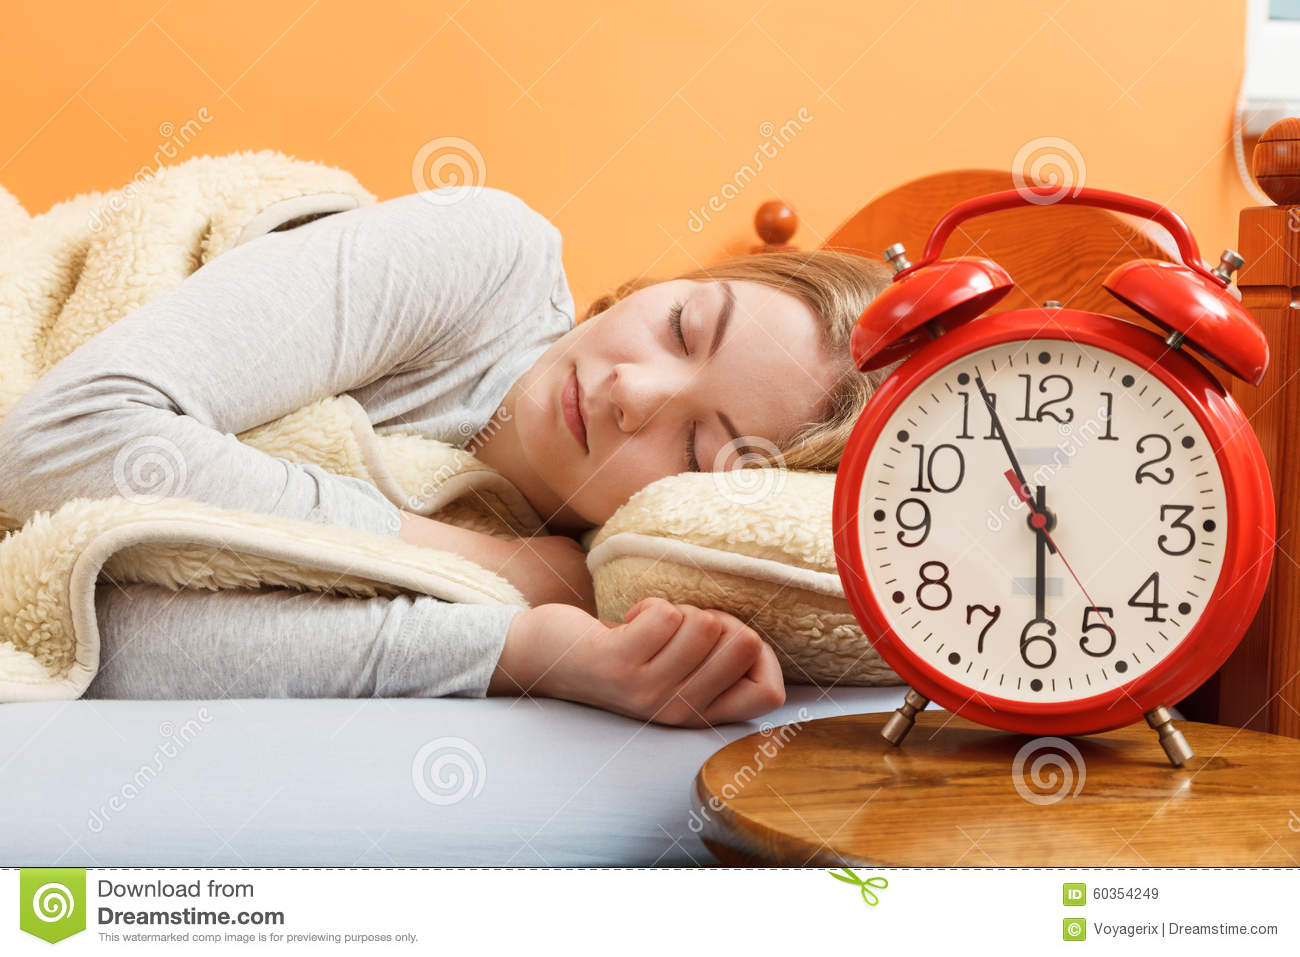 Woman Sleeping In Bed With Set Alarm Clock  Stock Image - Image of